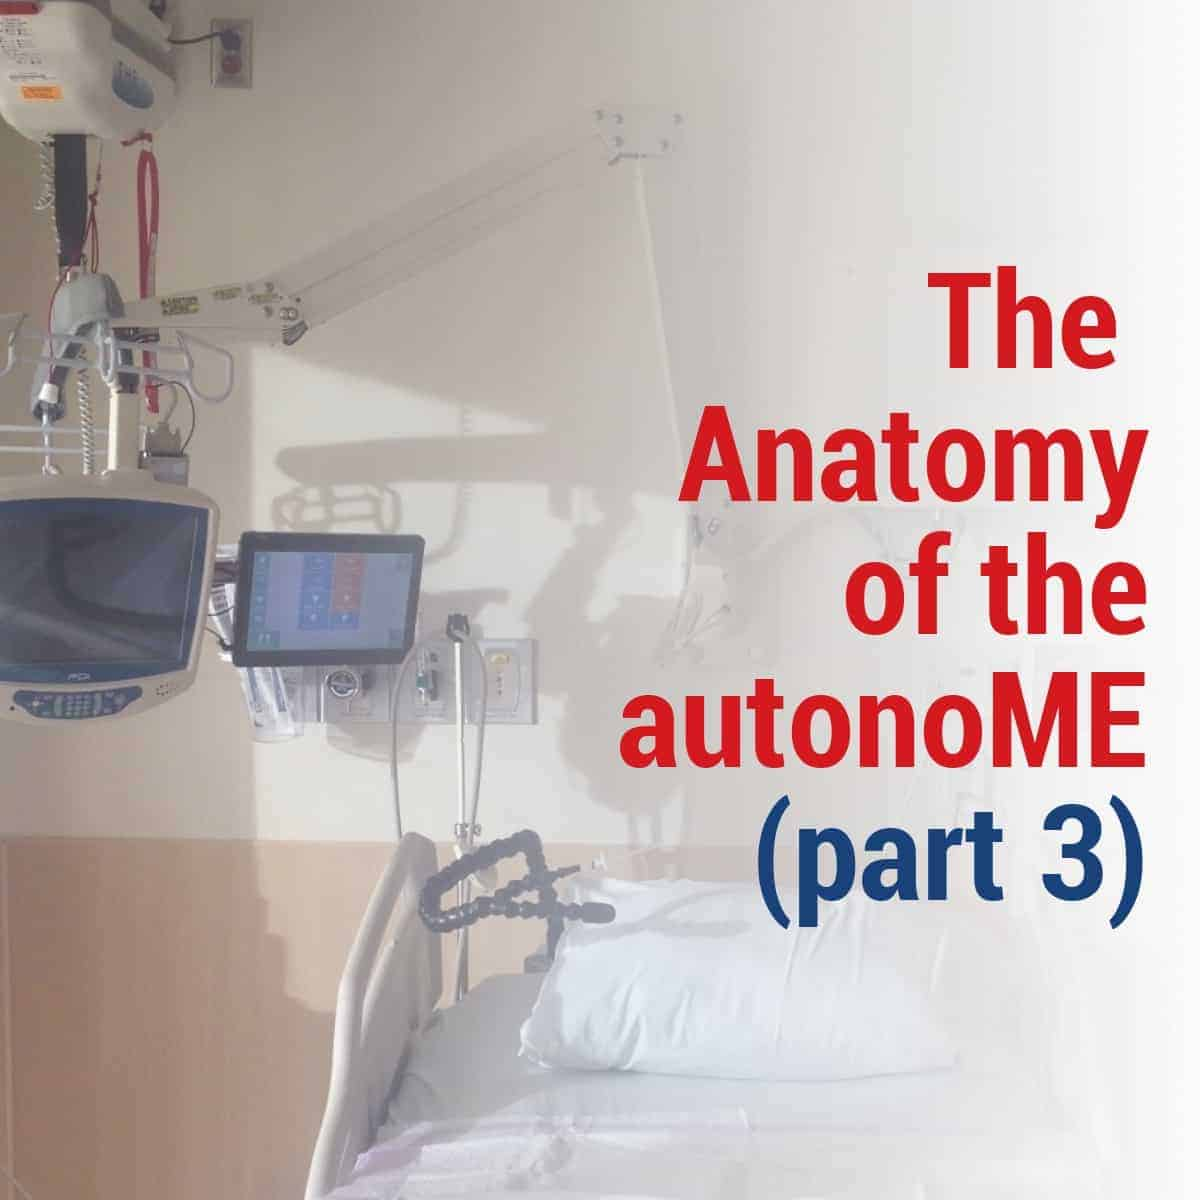 The Anatomy of the autonoME 3